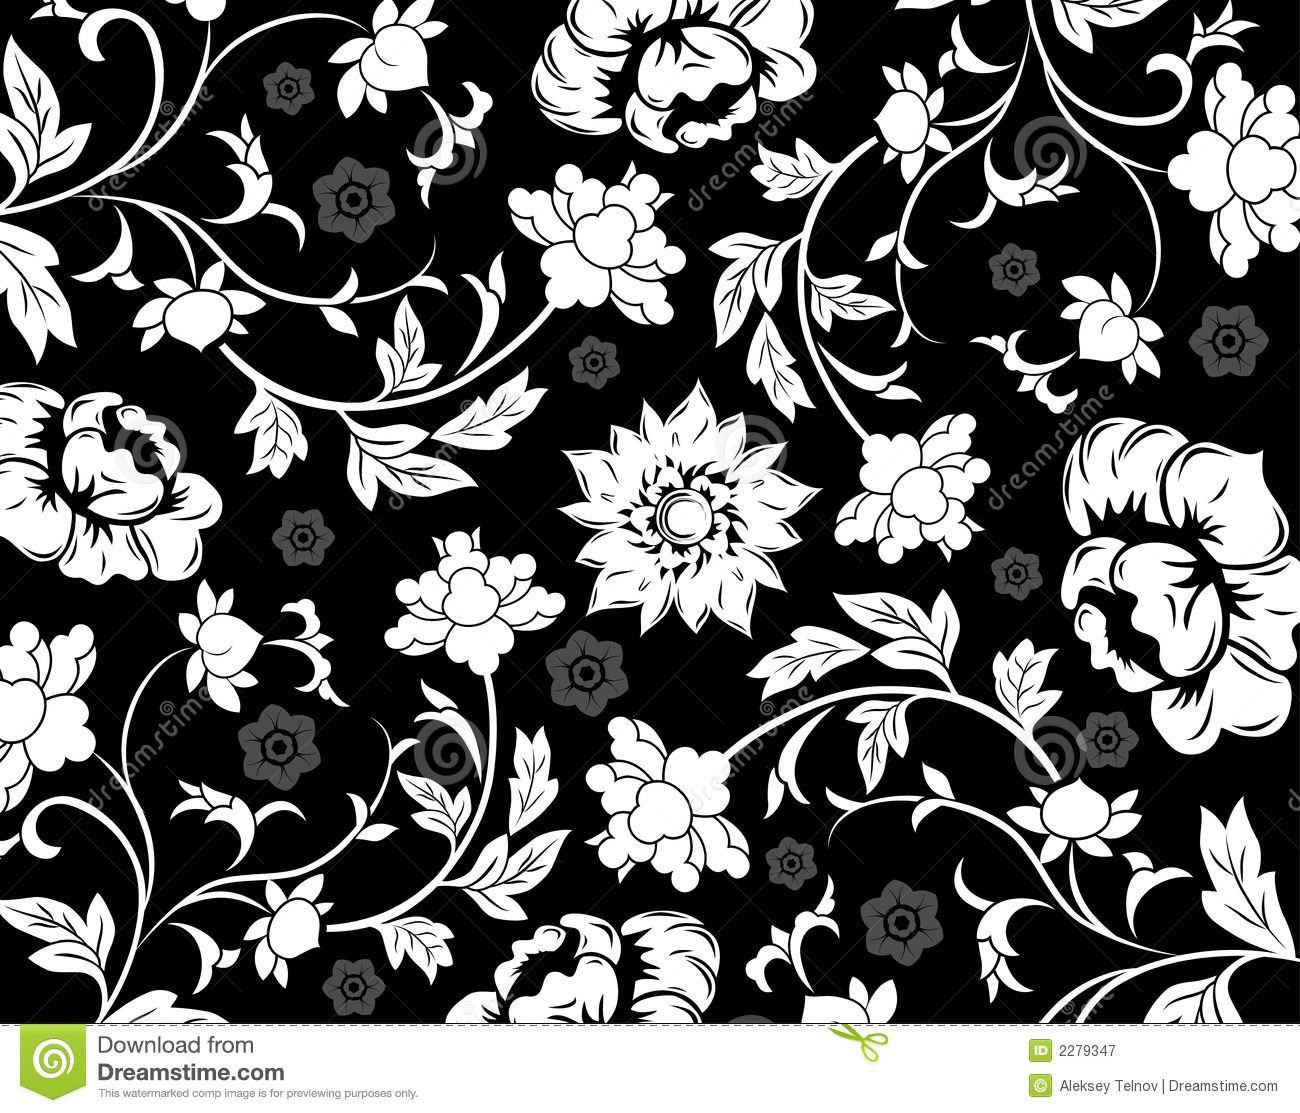 abstract floral flowers patterns - photo #13